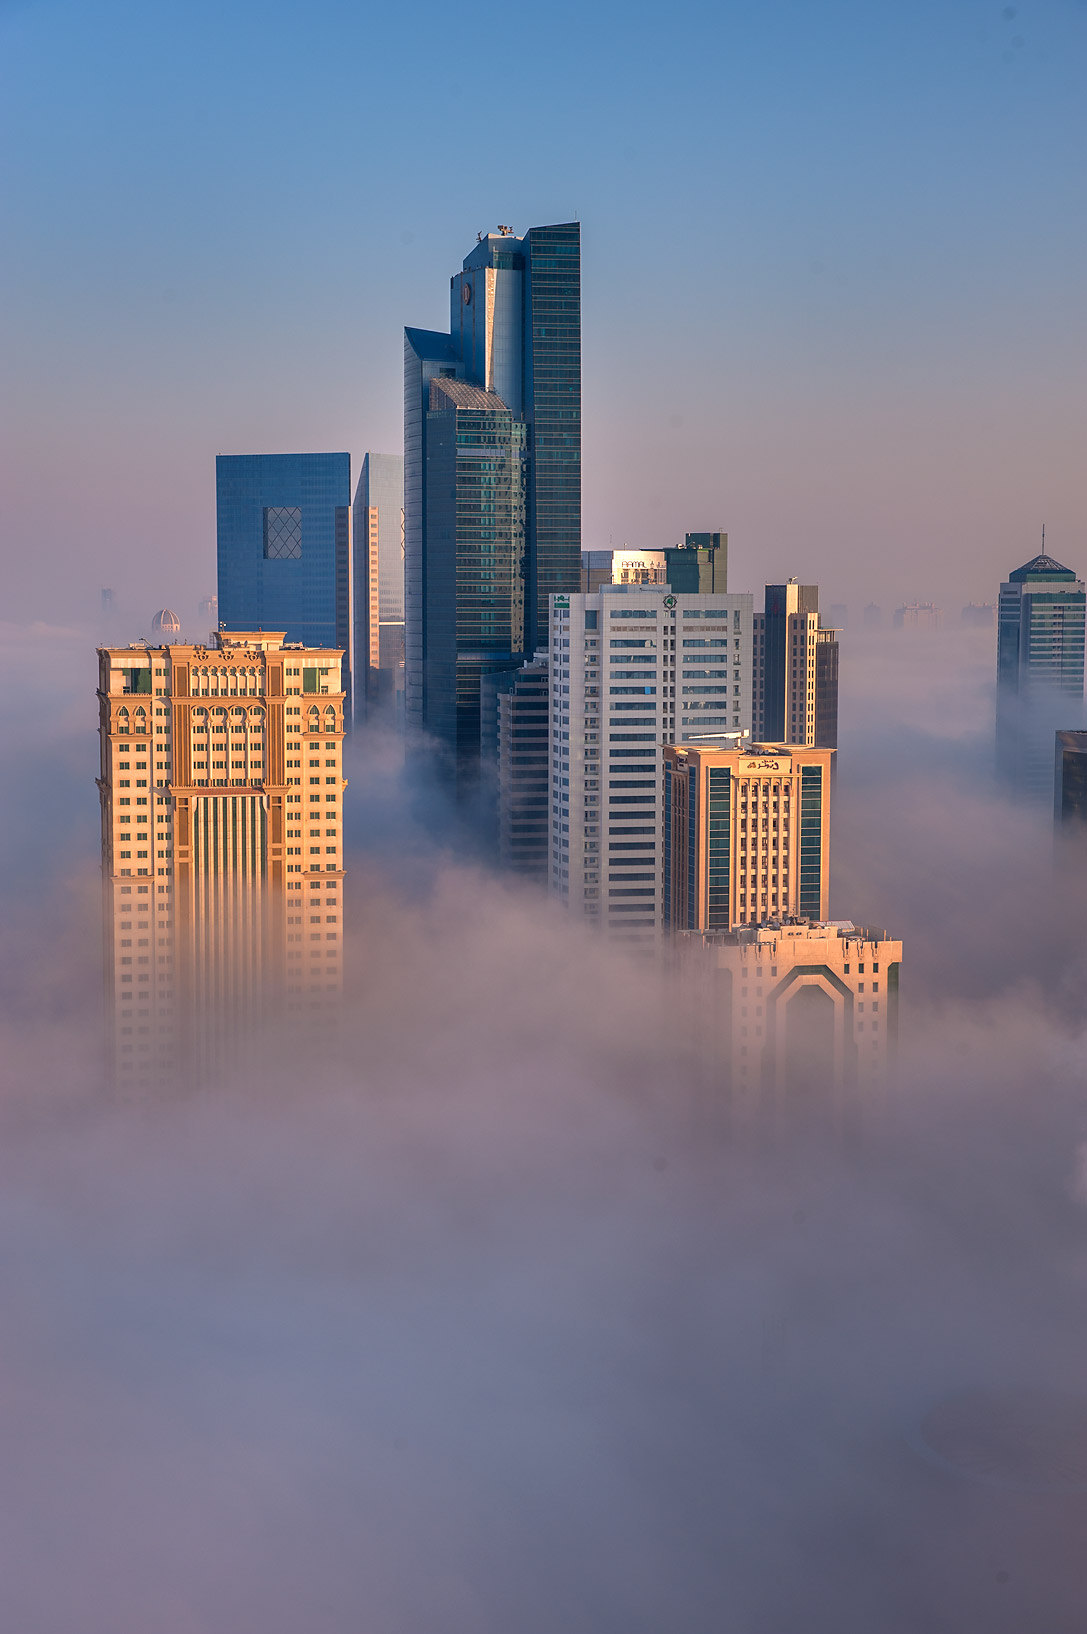 Morning fog engulfed Silhouette Tower in business...Dareen Tower in West Bay. Doha, Qatar